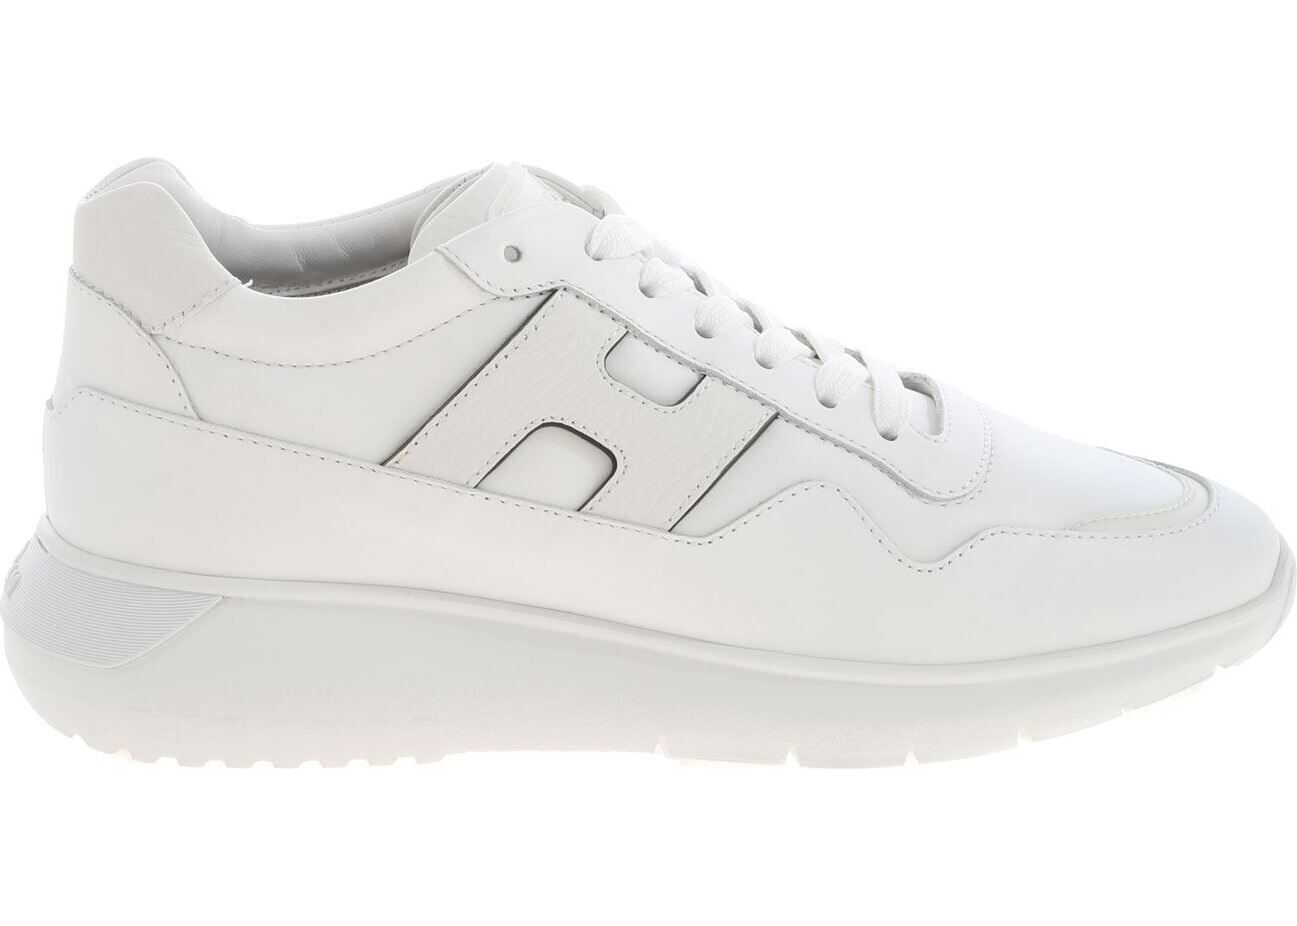 Hogan Interactive 3 Sneakers In White White